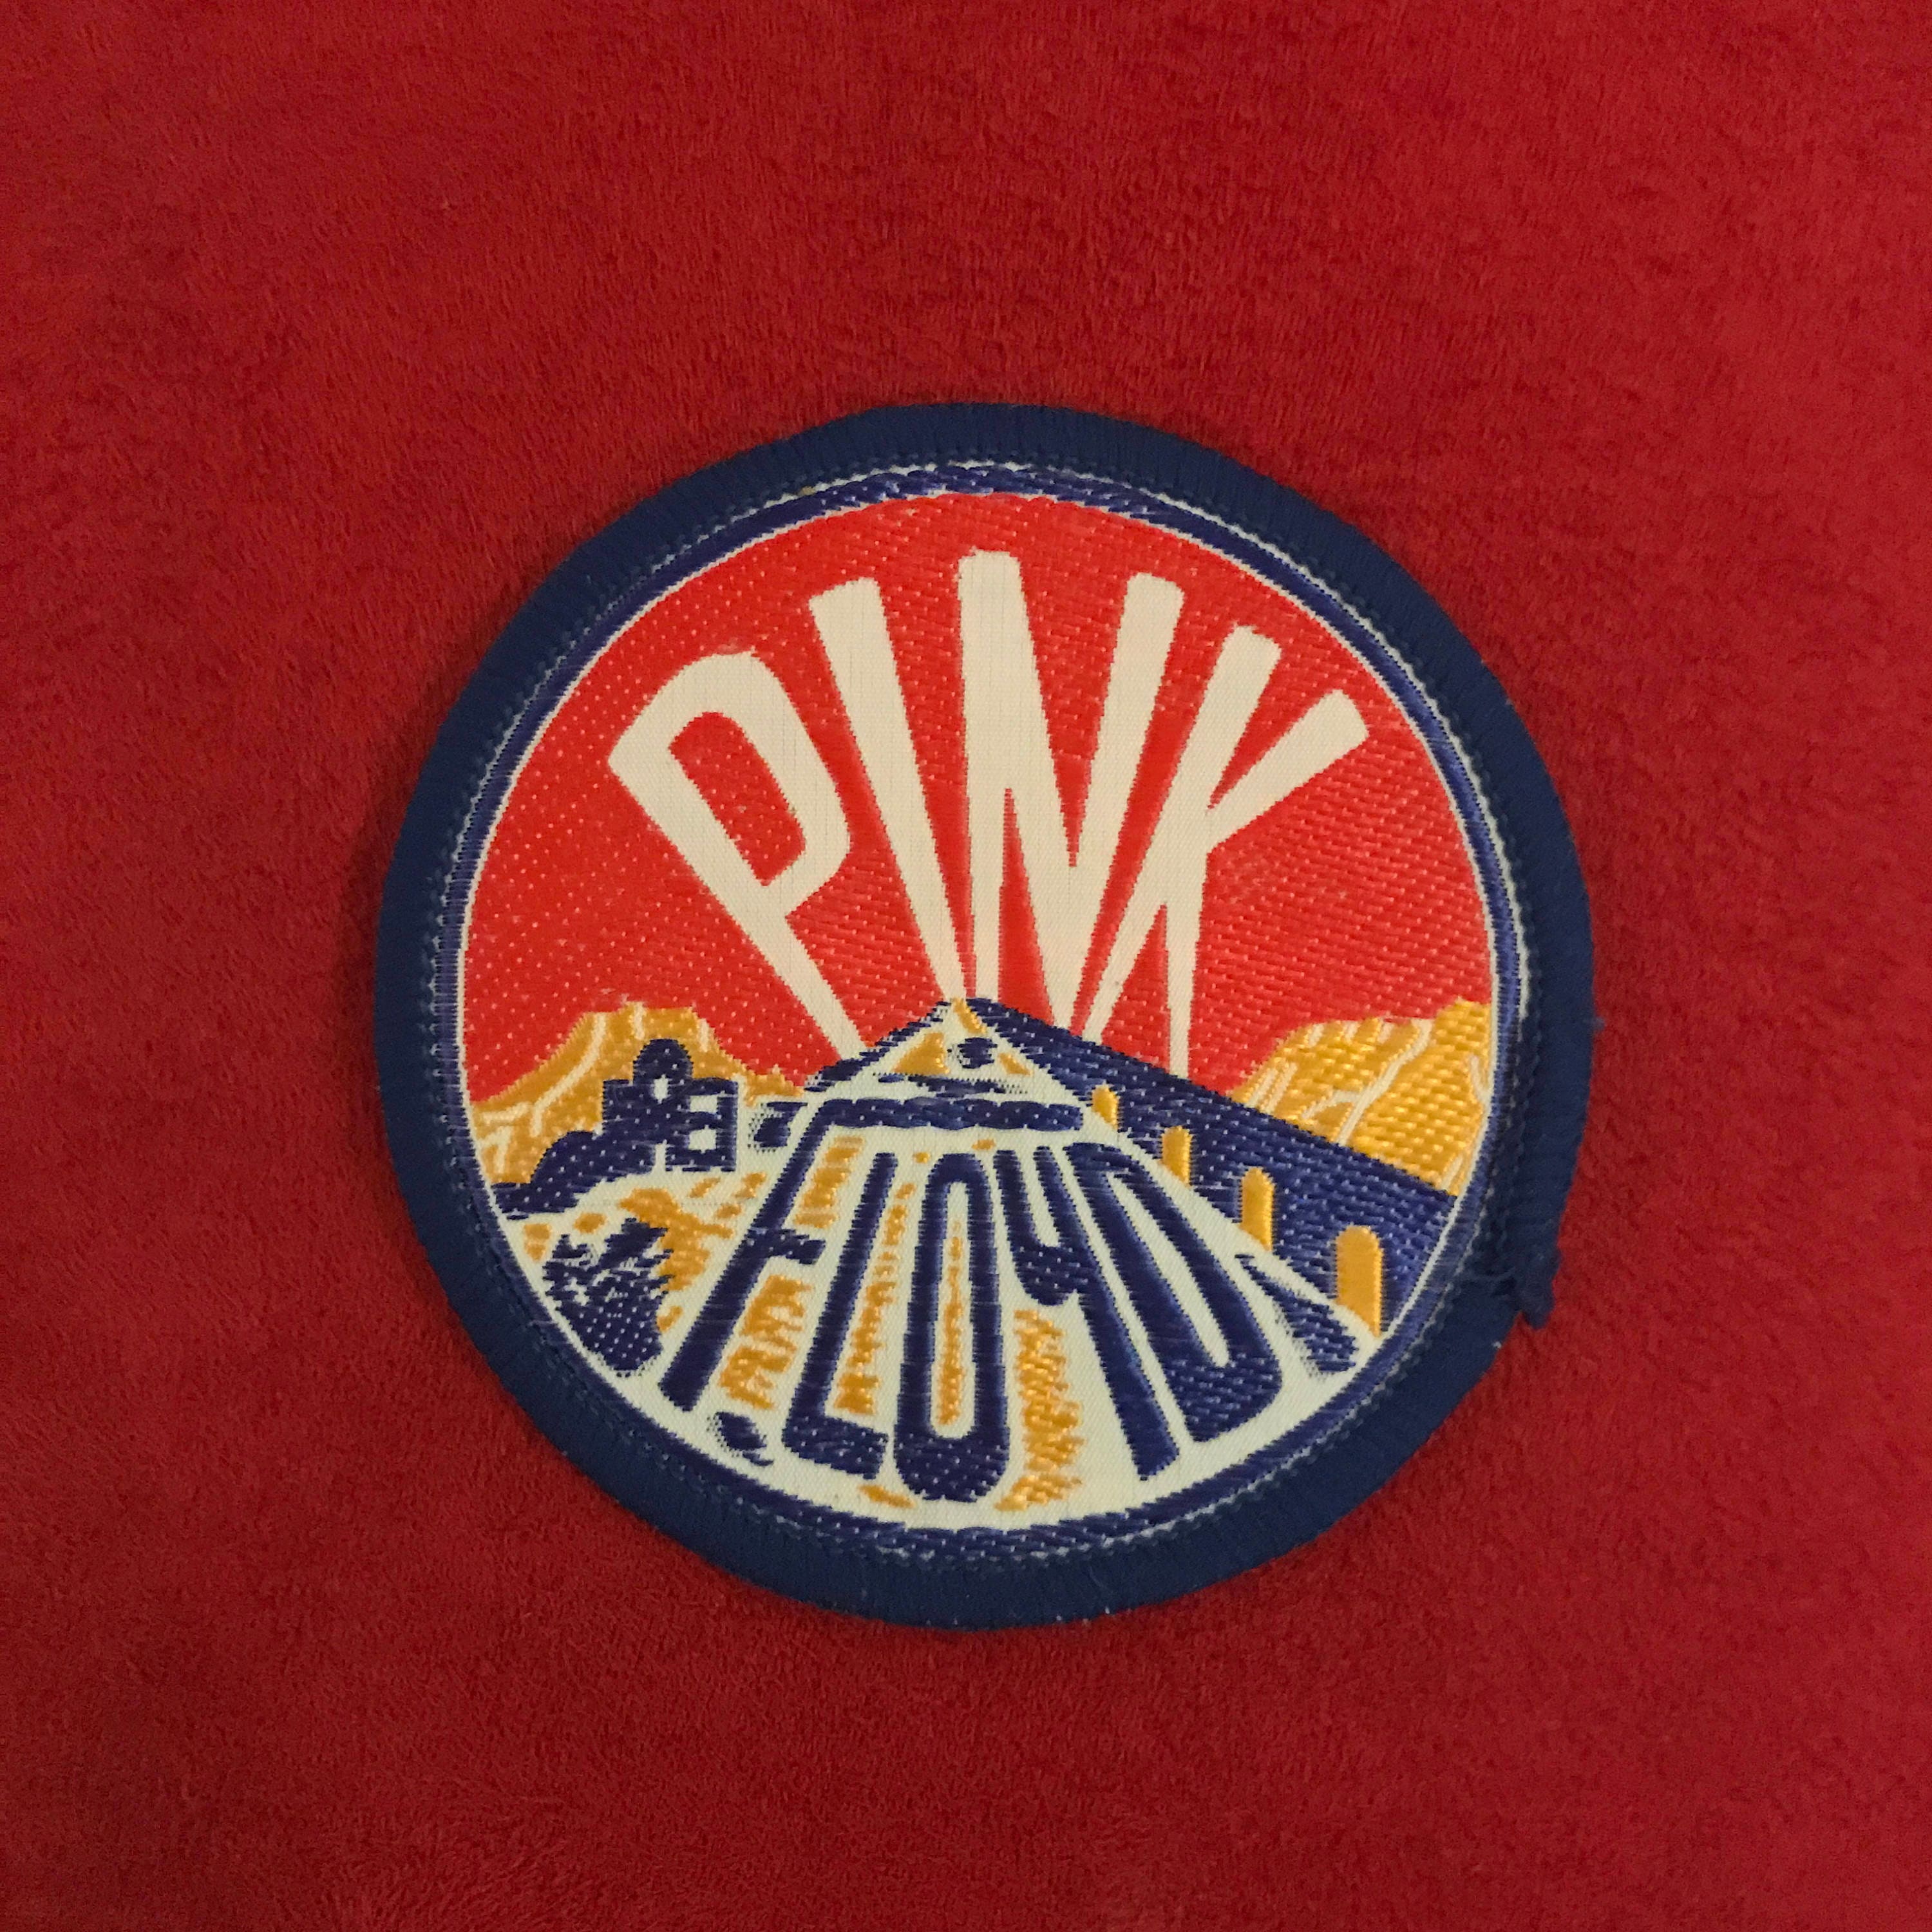 Original vintage 1970s rock band embroidered sew on patches pink original vintage 1970s rock band embroidered sew on patches pink floyd led zeppelin black sabbath rolling stones queen yes biocorpaavc